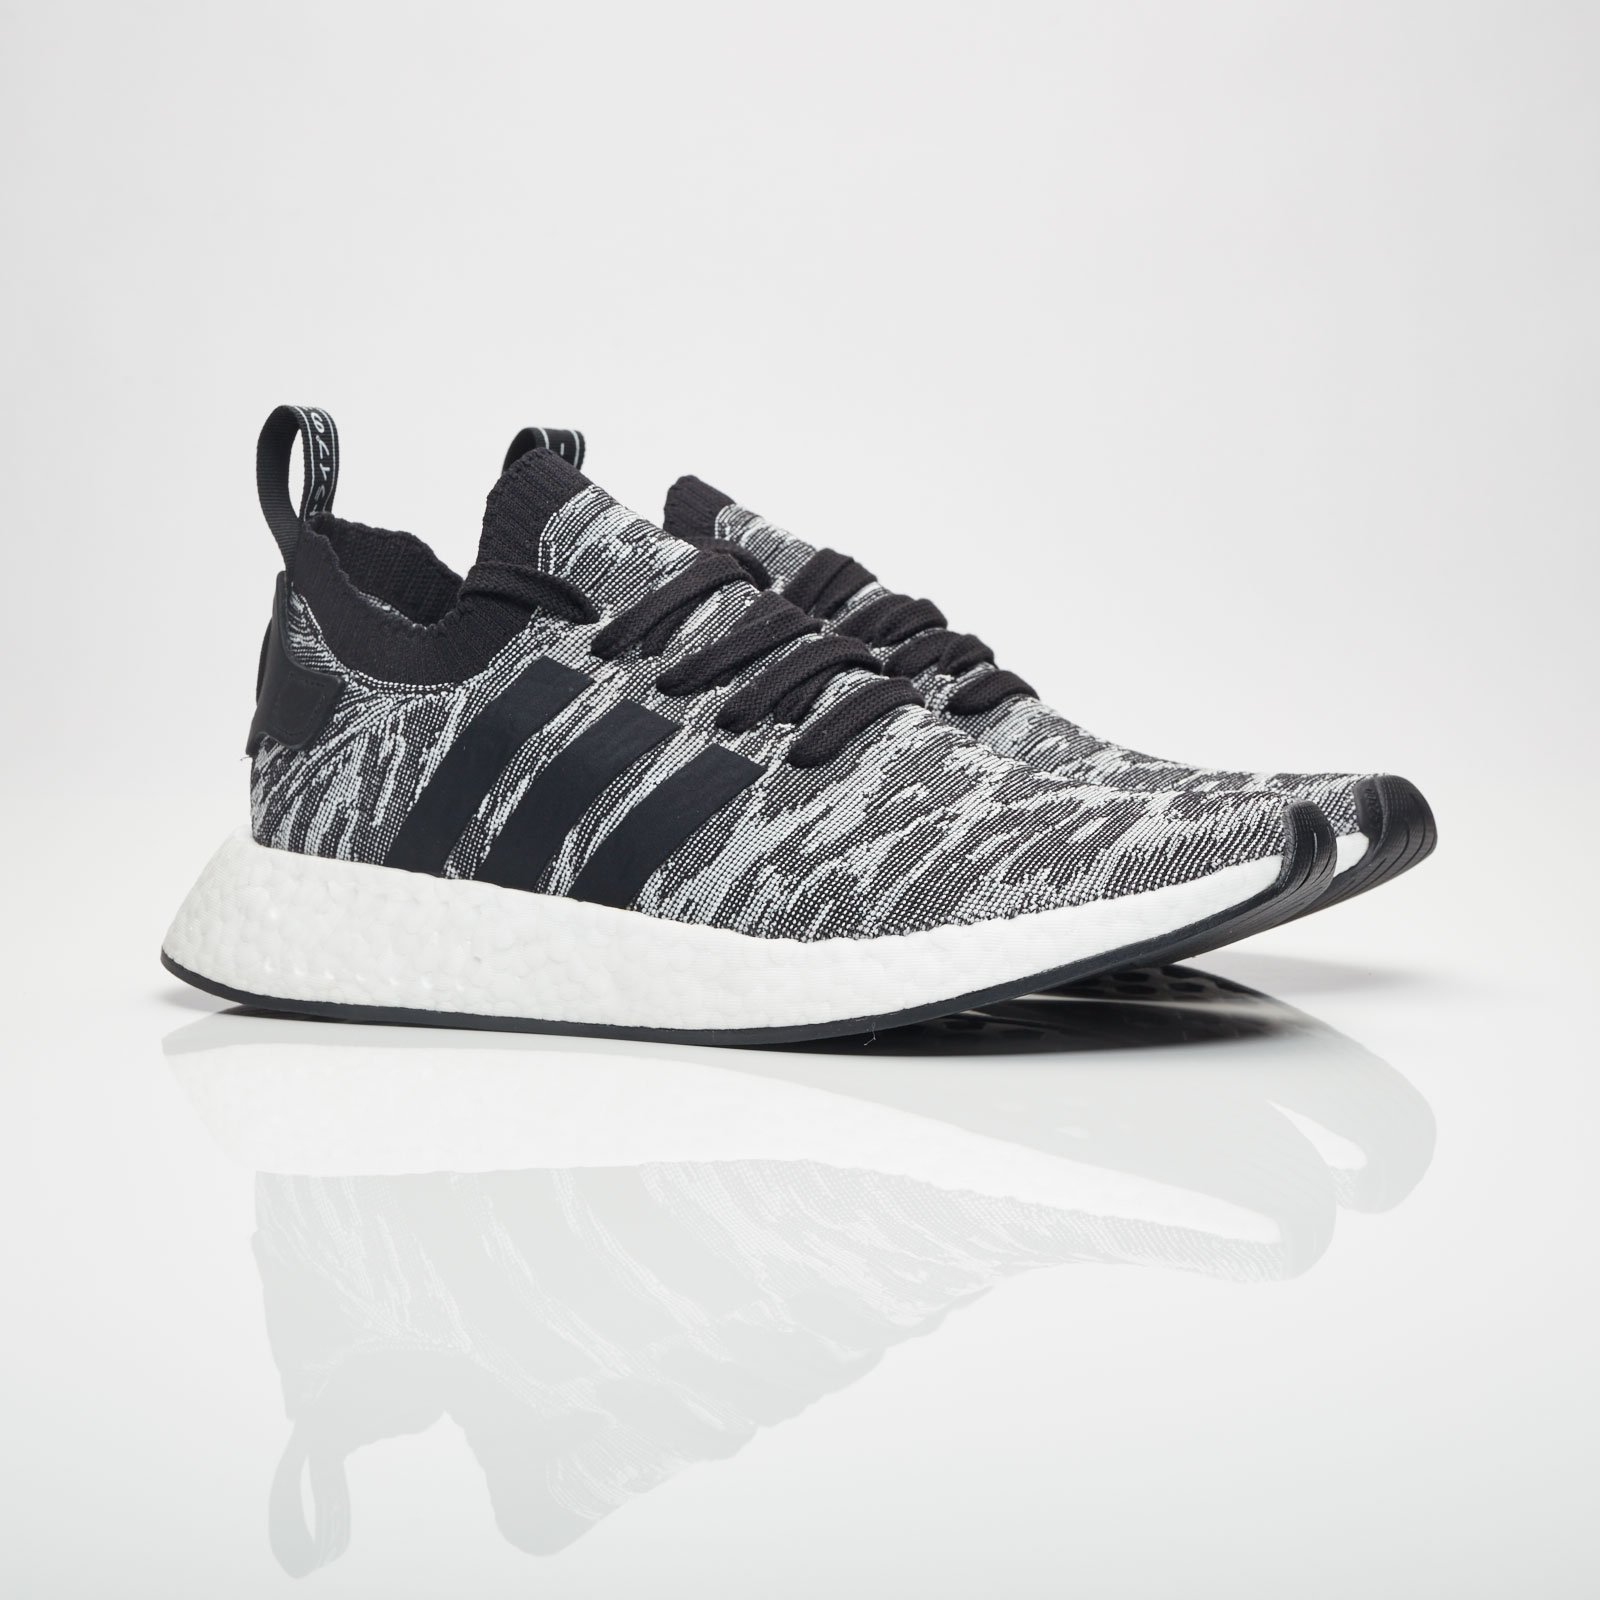 3eb76fec961d9 adidas NMD R2 PK - By9409 - Sneakersnstuff